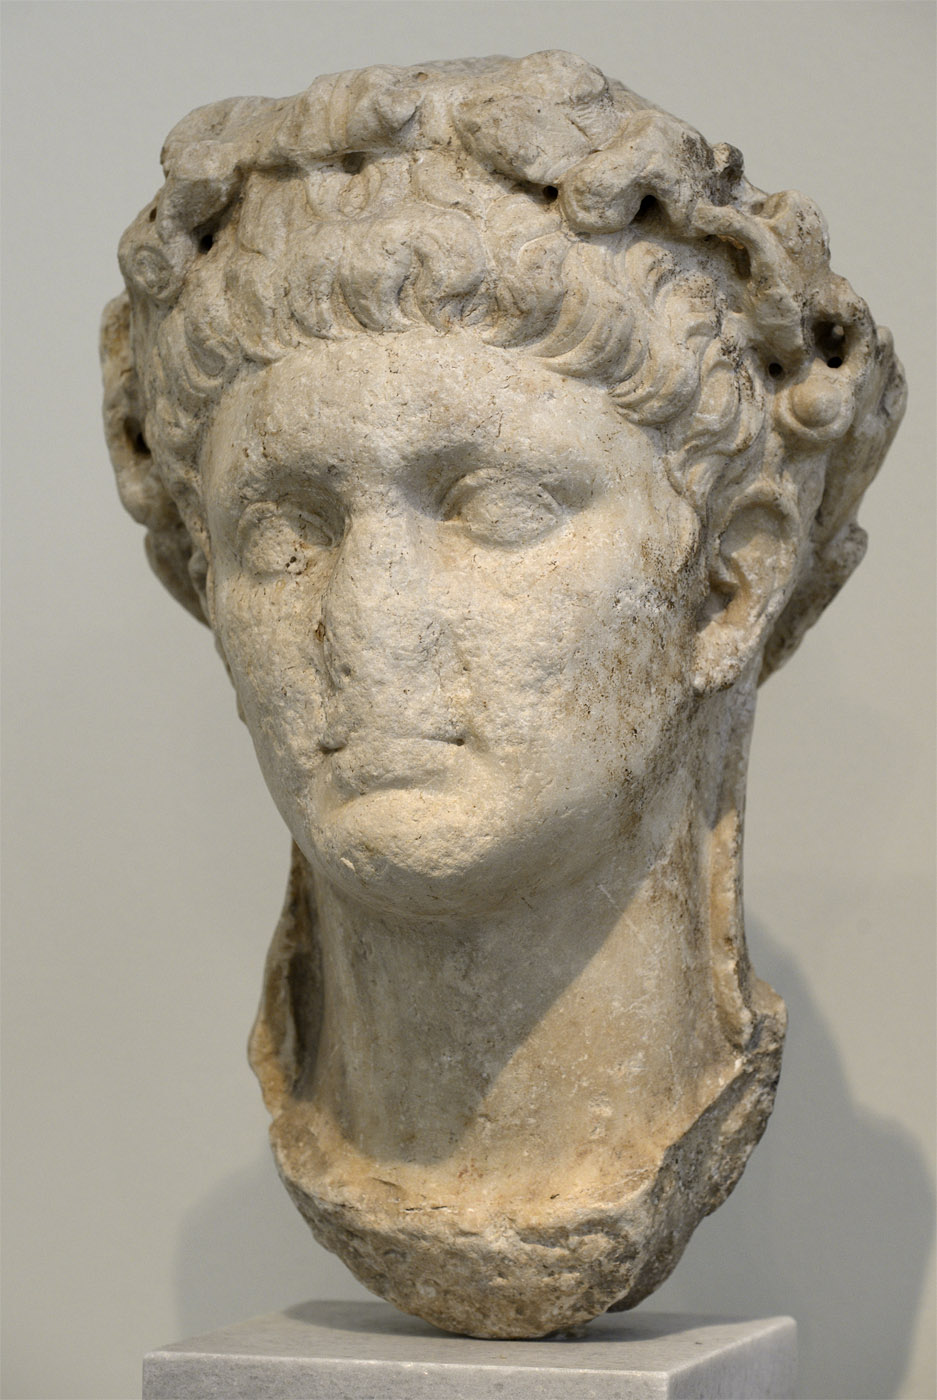 Head of Claudius wearing the wreath of oak leaves. Pentelic marble. 41—54 CE. Athens, National Archaeological Museum